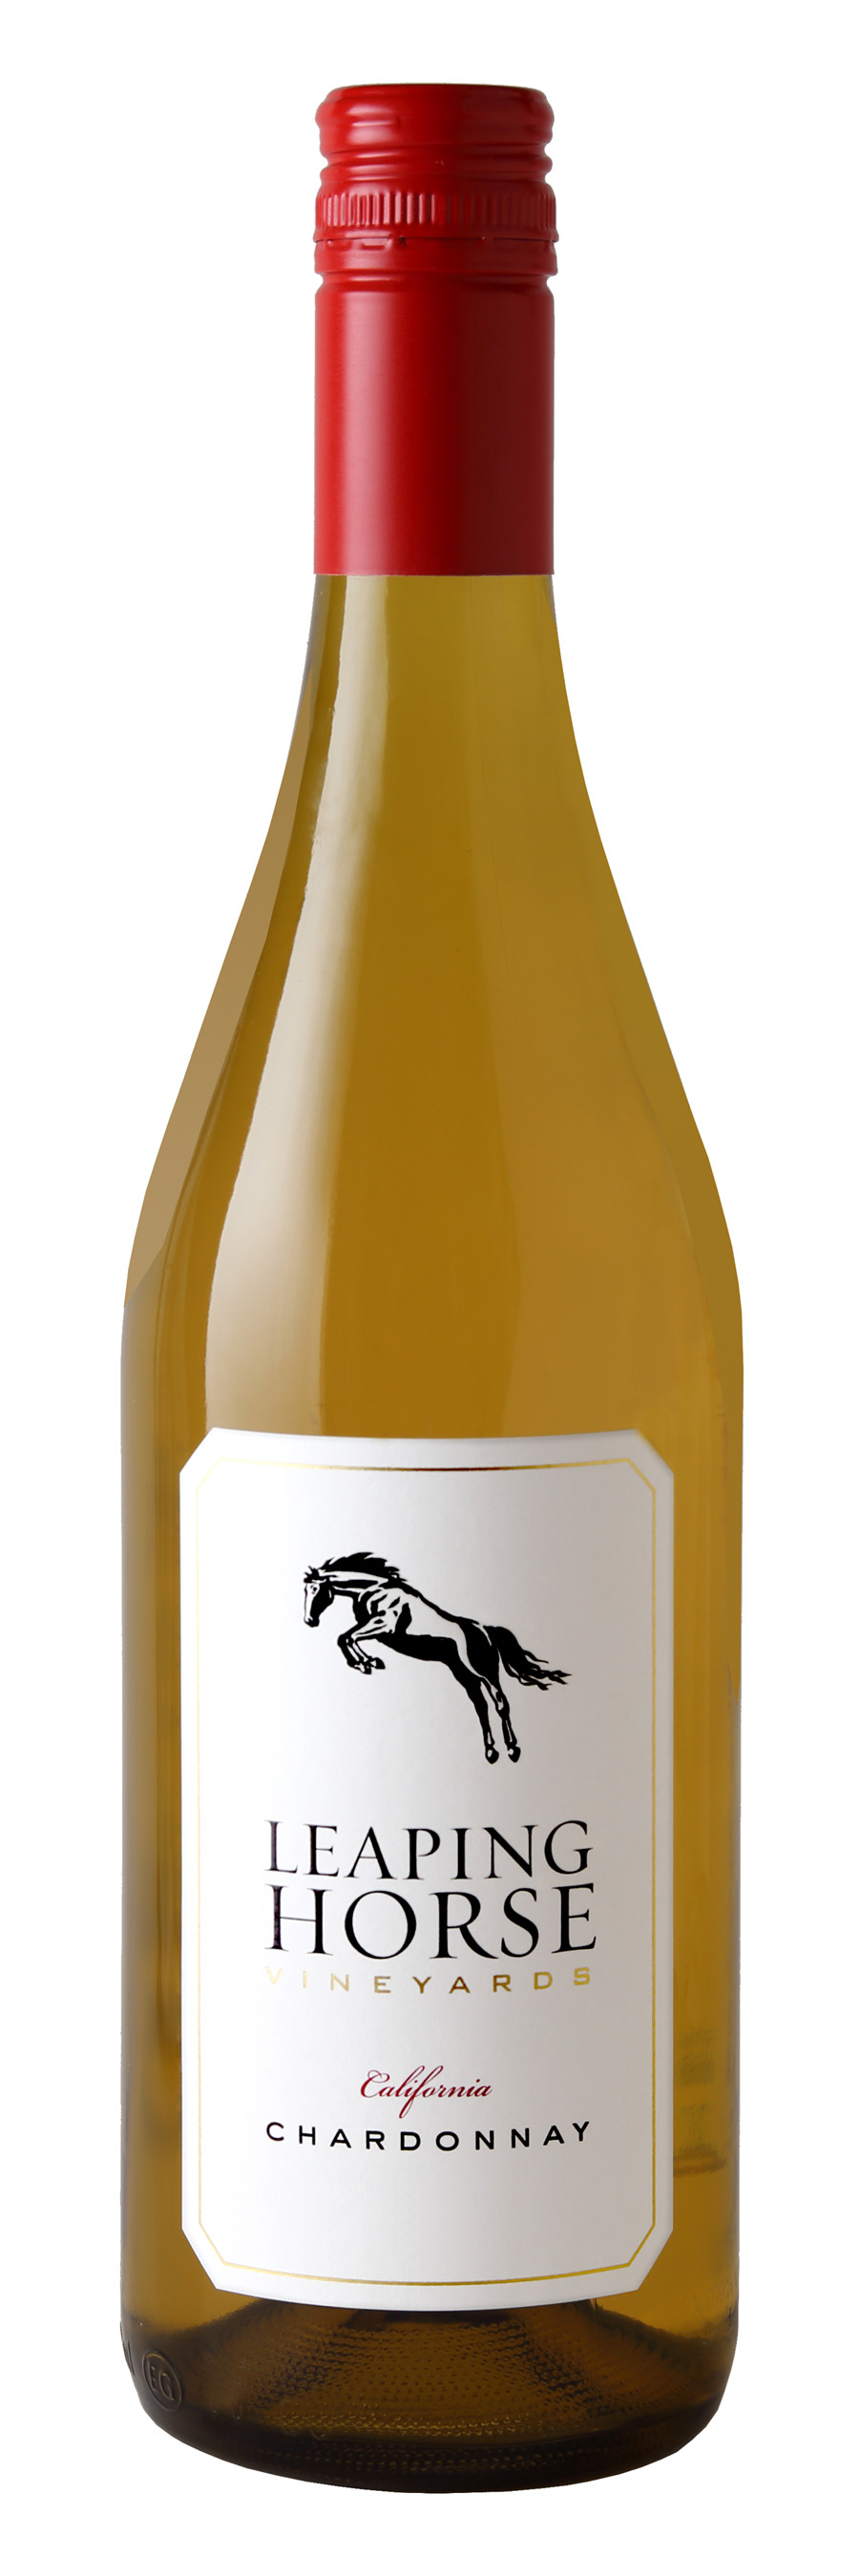 LEAPING HORSE 2016 CHARDONNAY